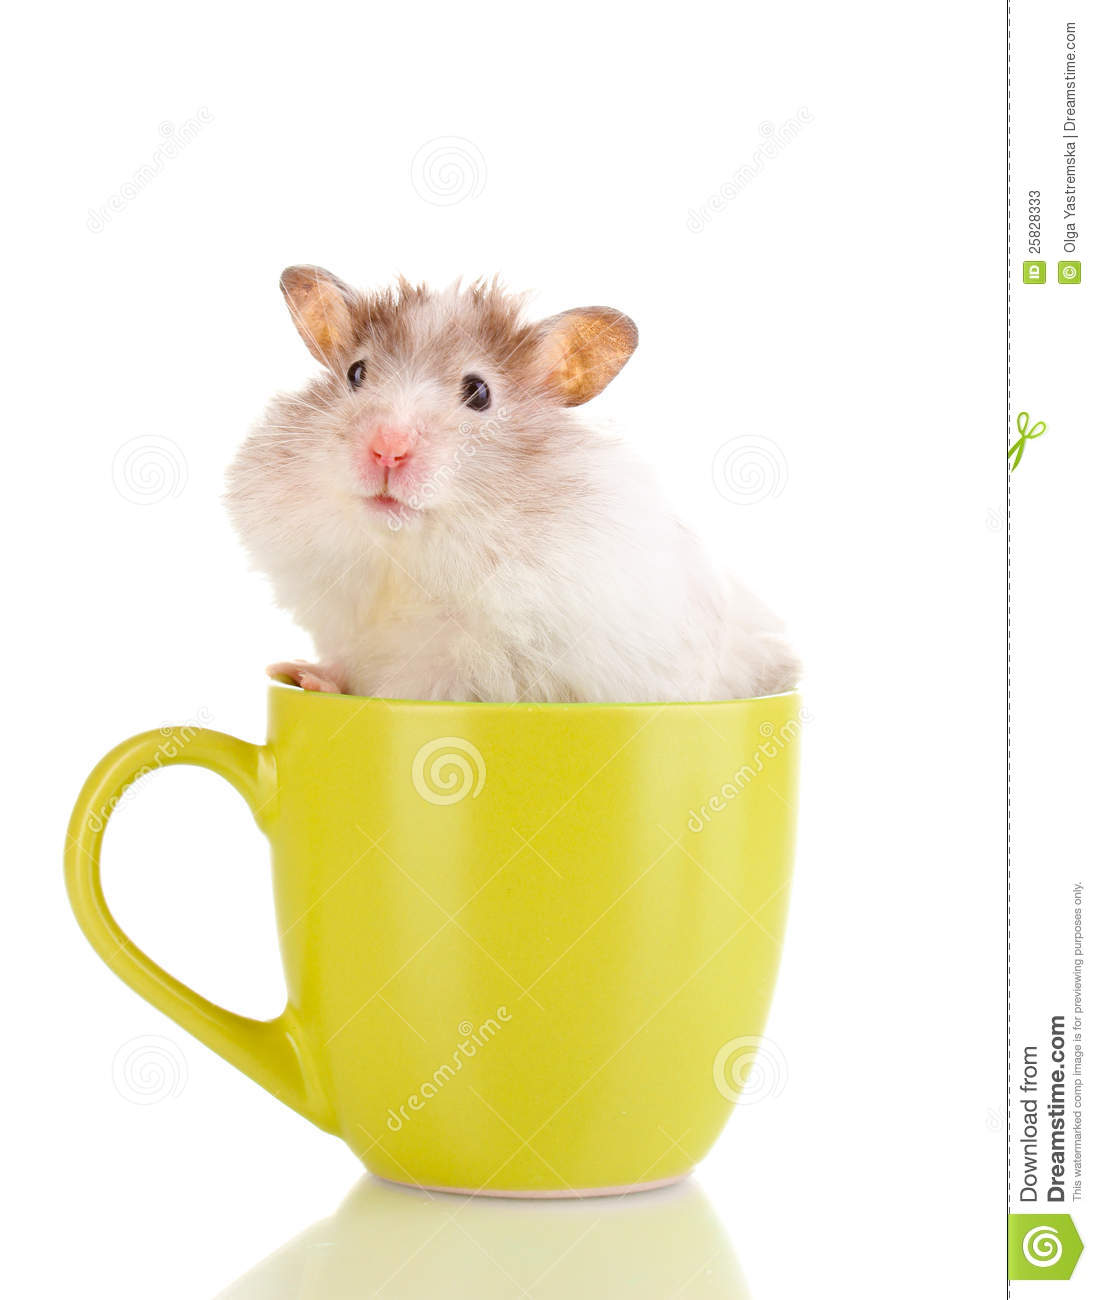 how to make thyme tea for hamsters